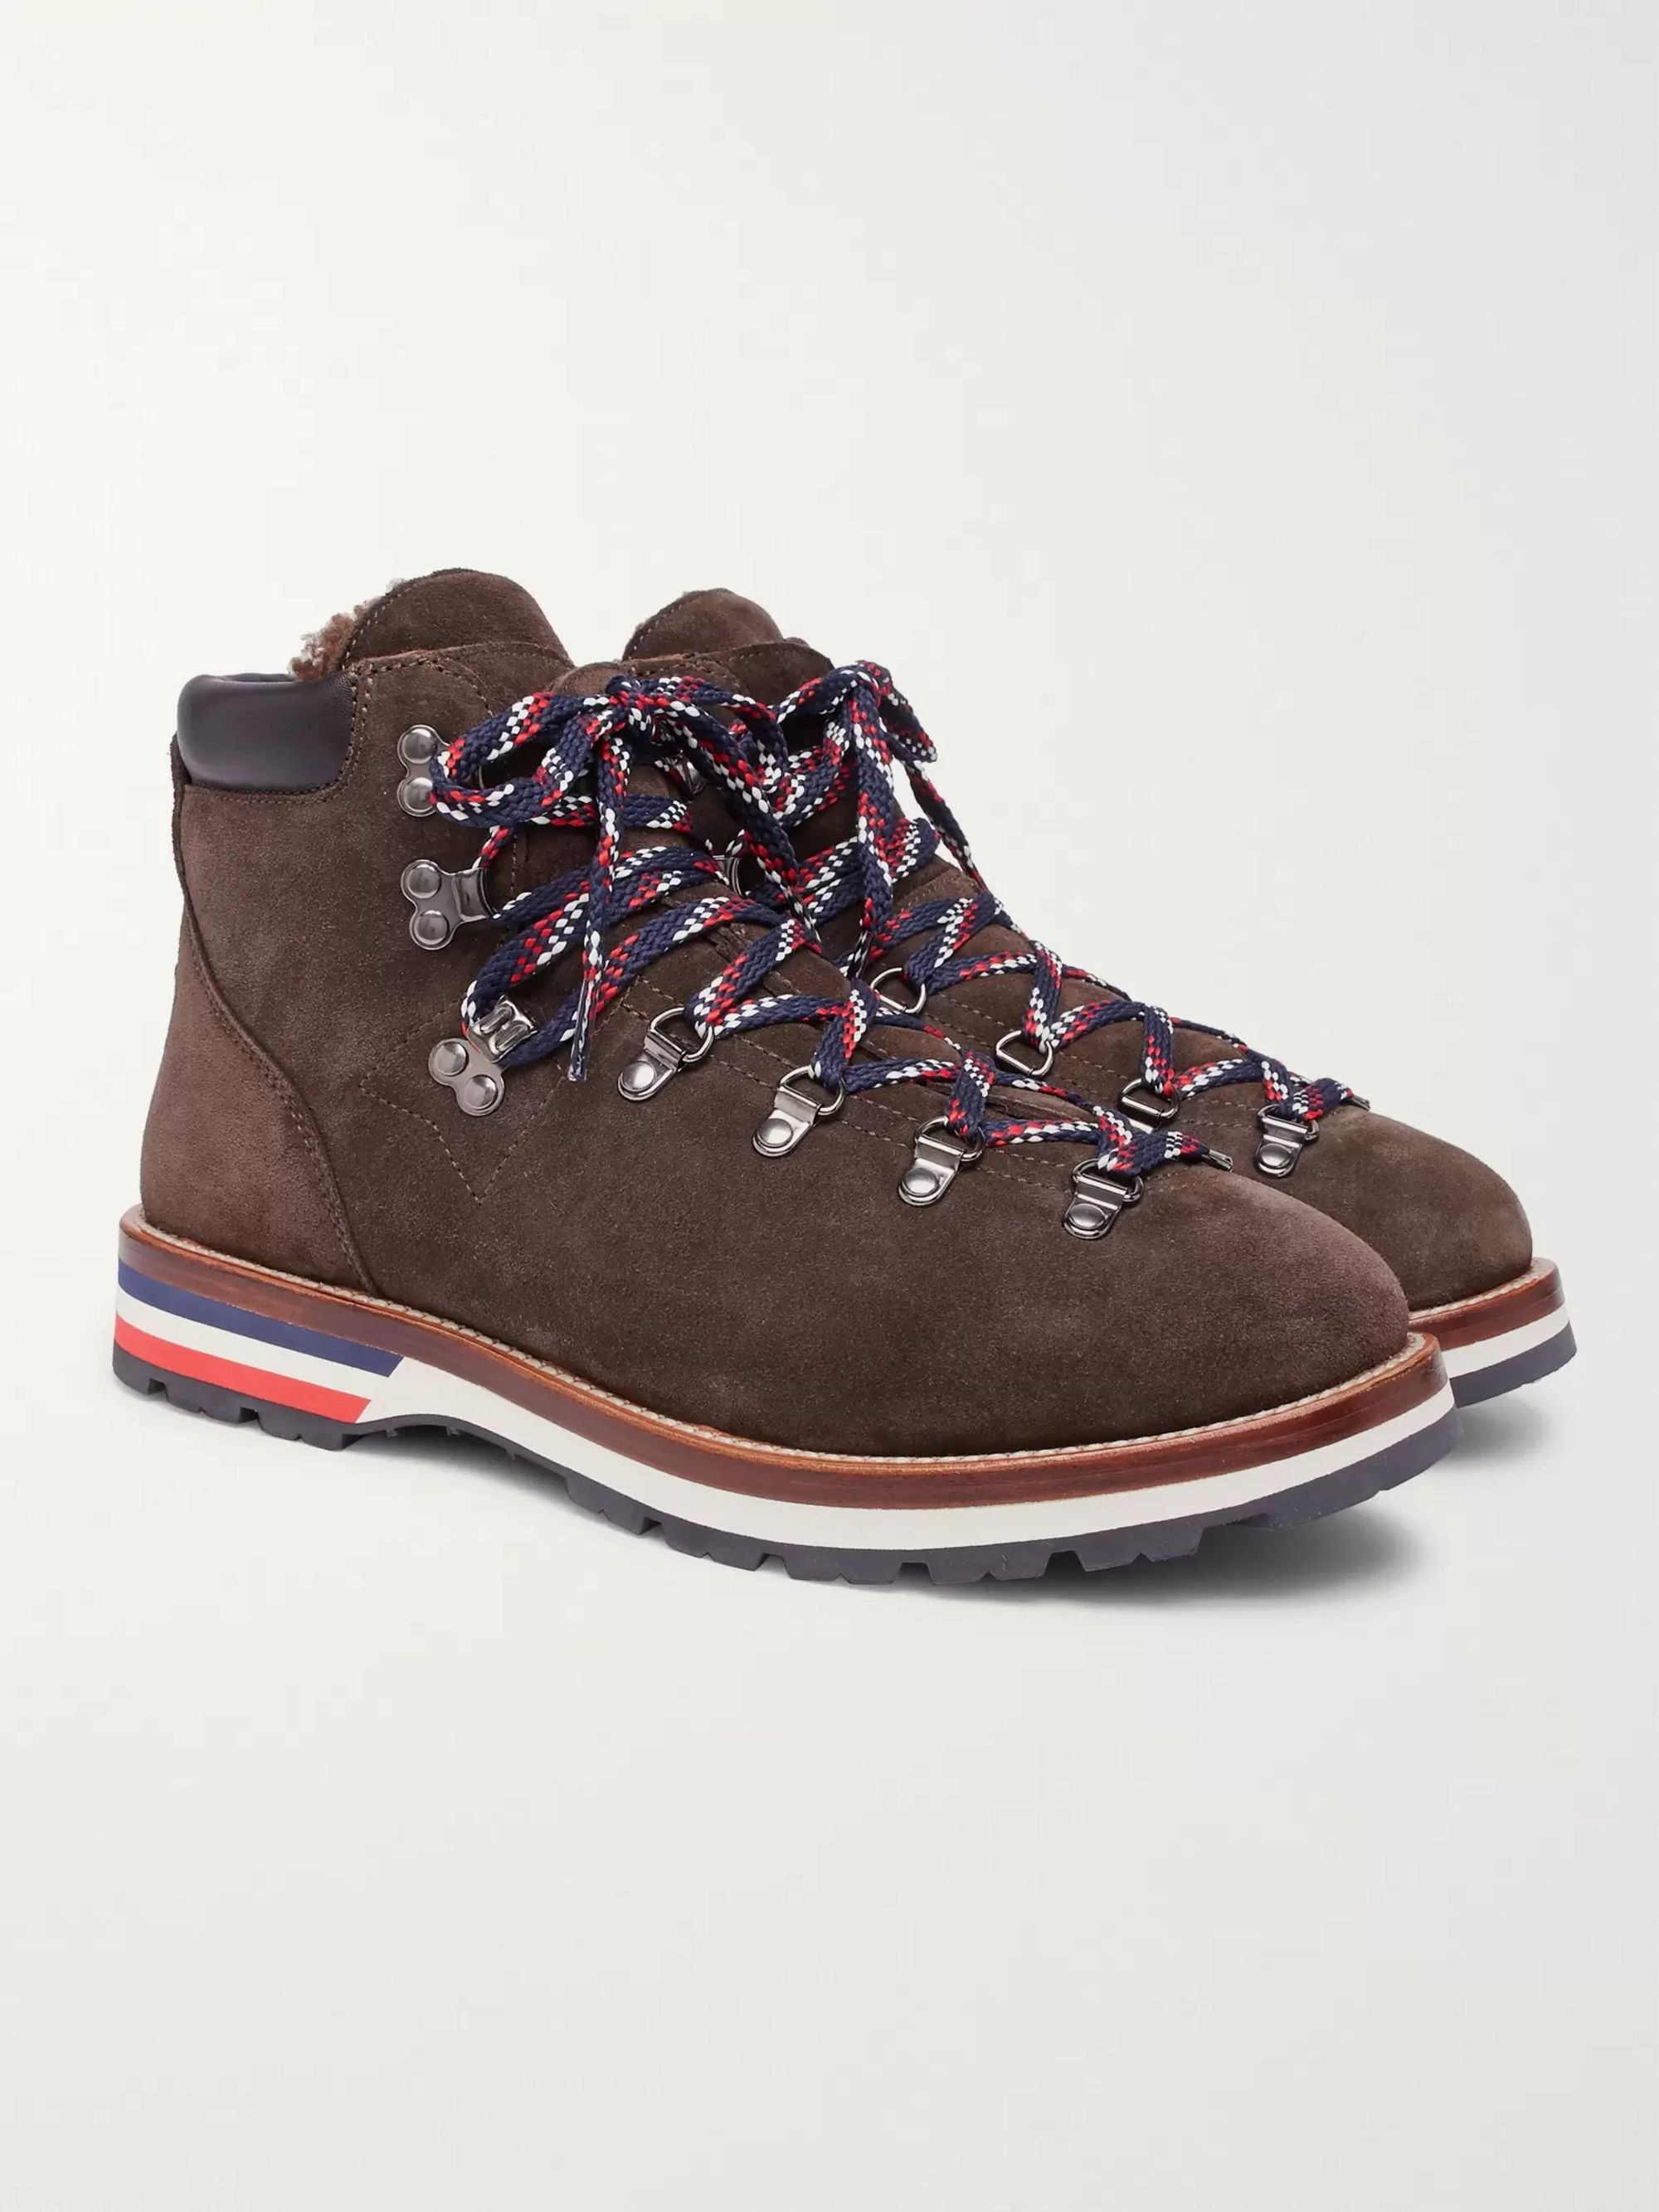 Moncler Peak Shearling-Lined Suede Boots